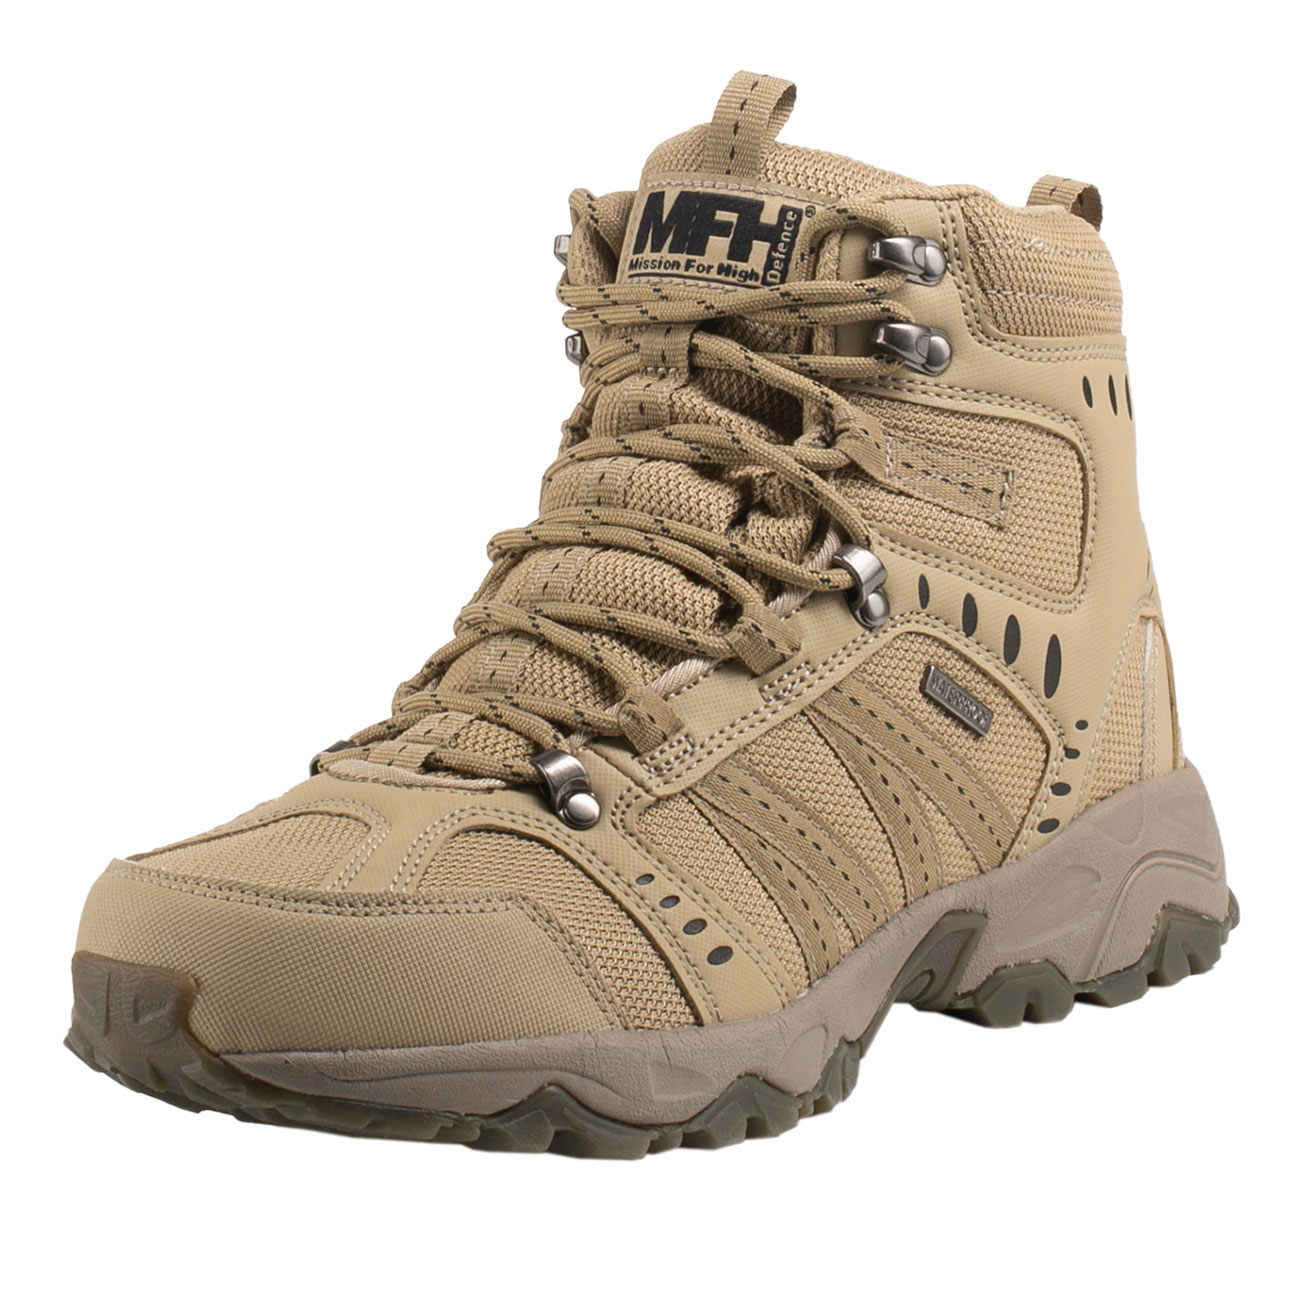 MFH Einsatzstiefel Tactical coyote tan 1